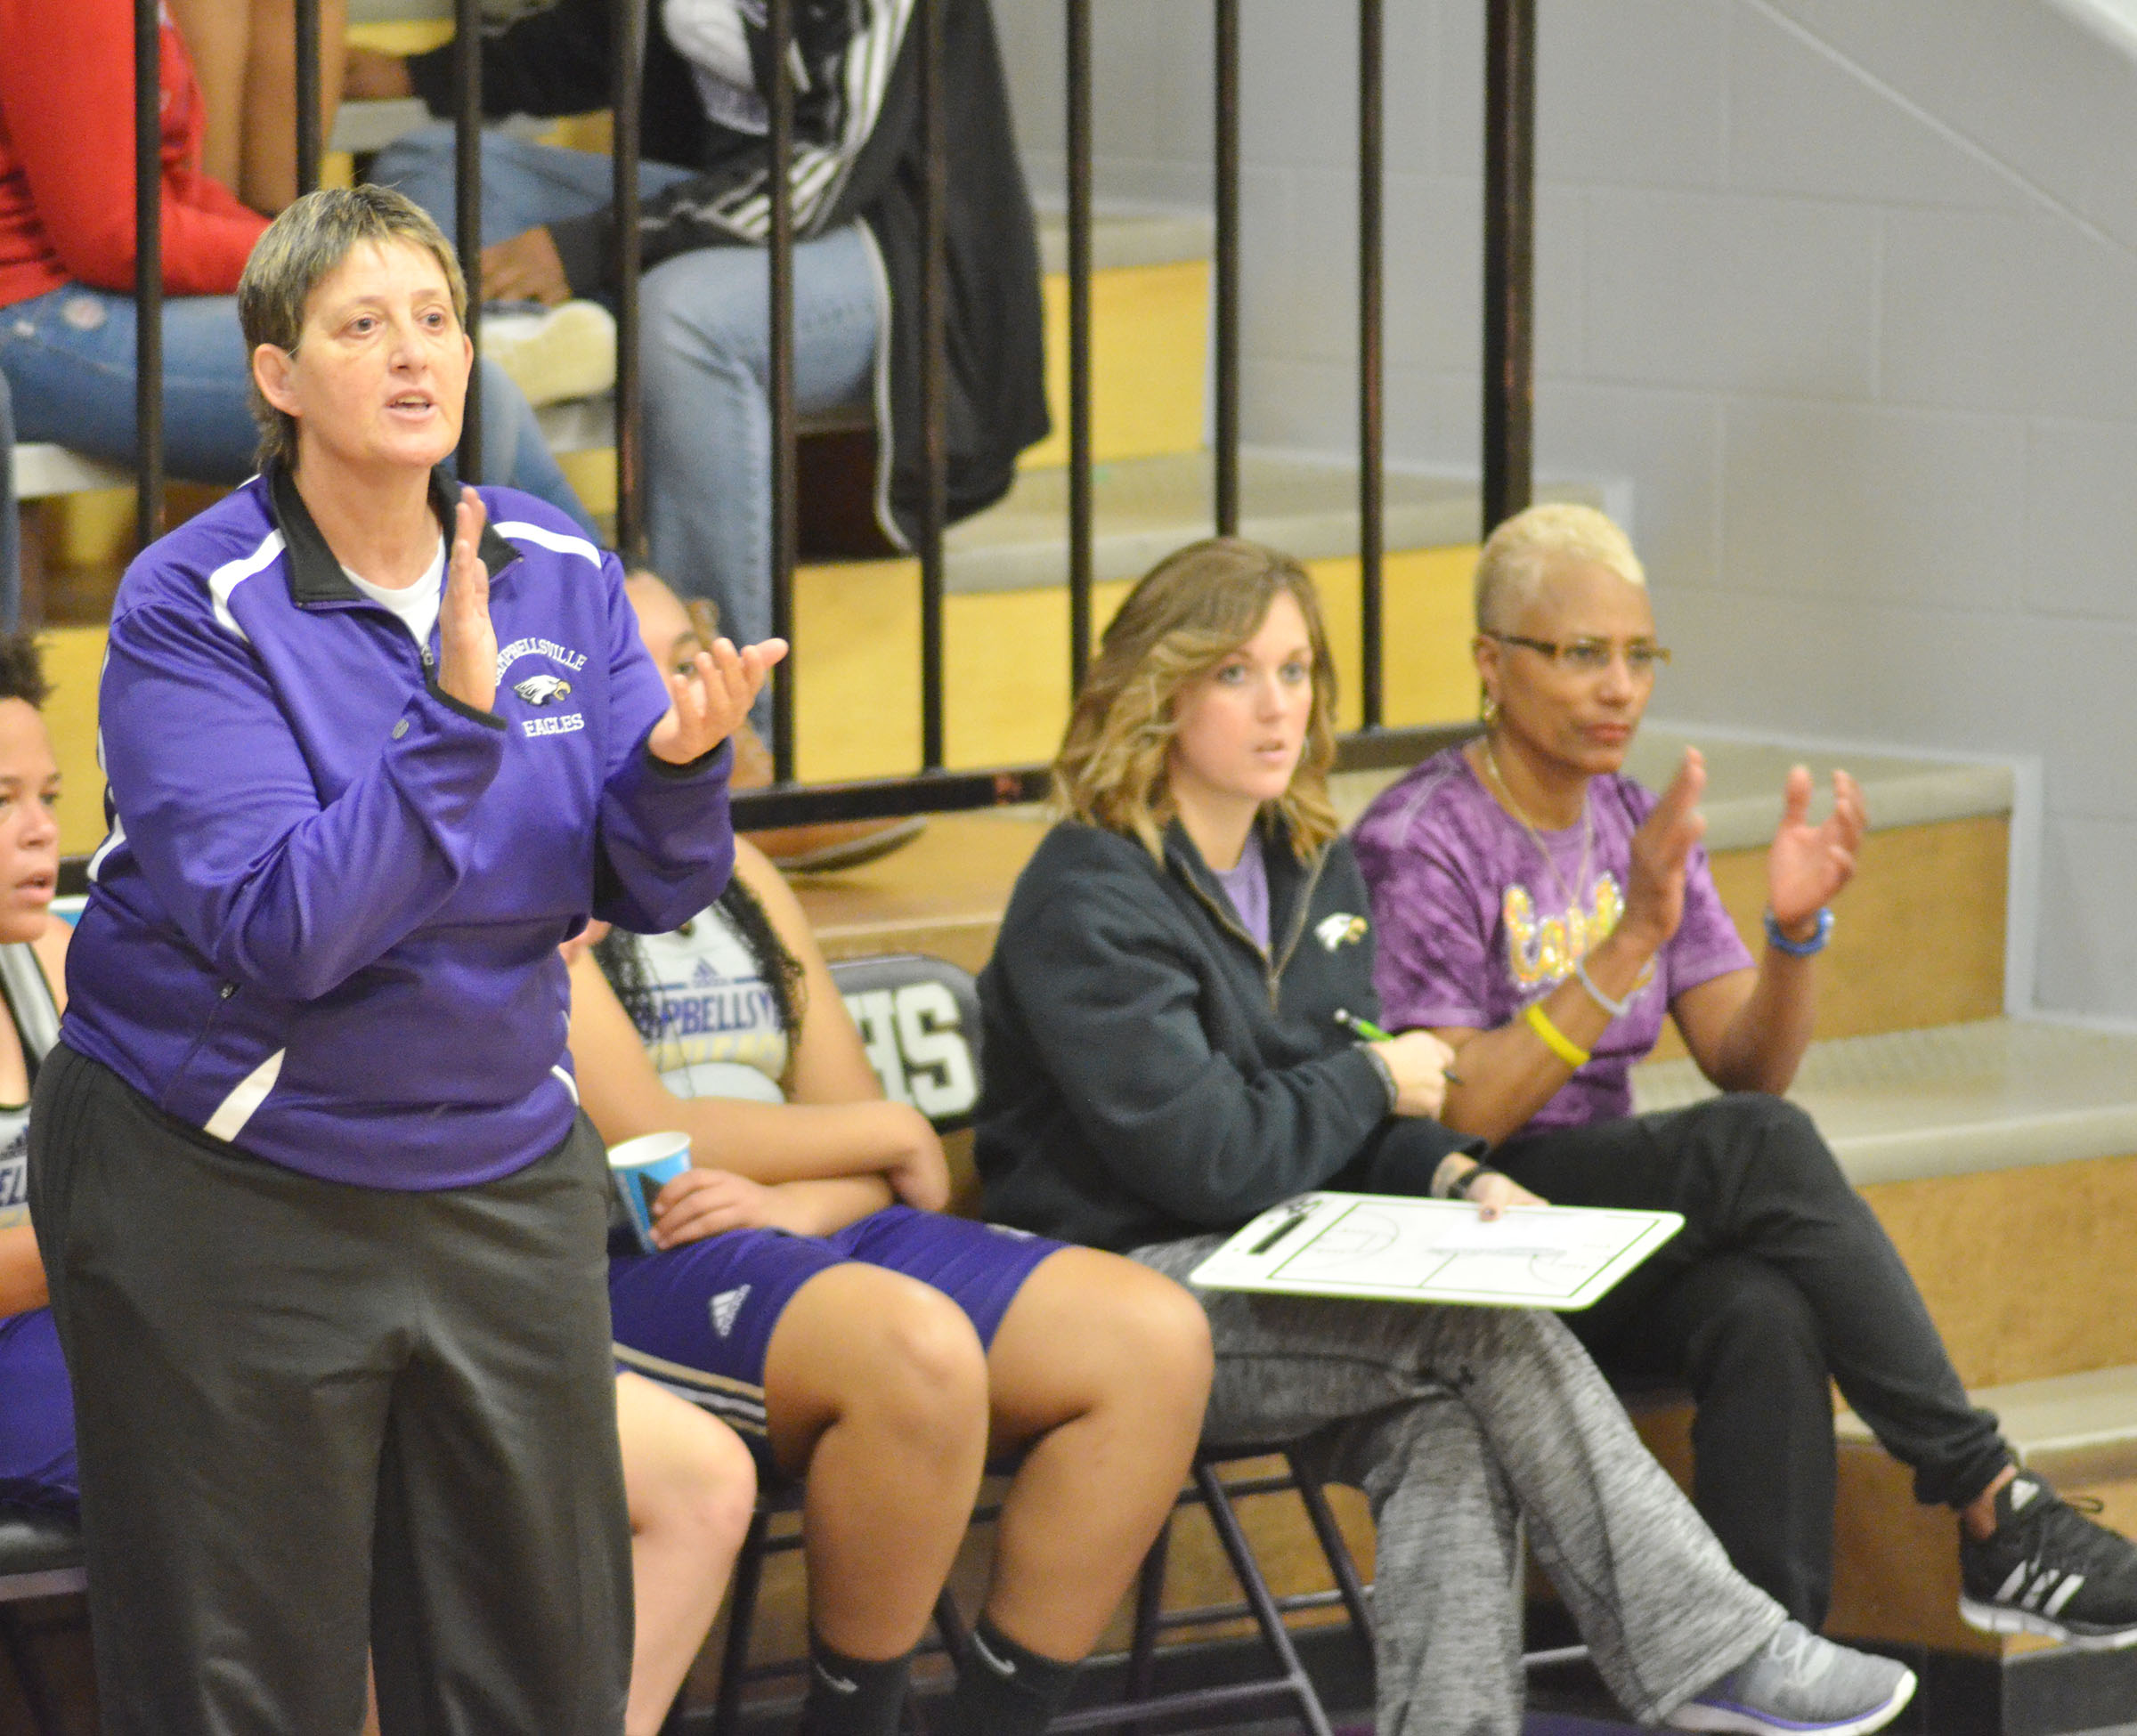 CHS girls' JV coach Katie Wilkerson cheers for her team.